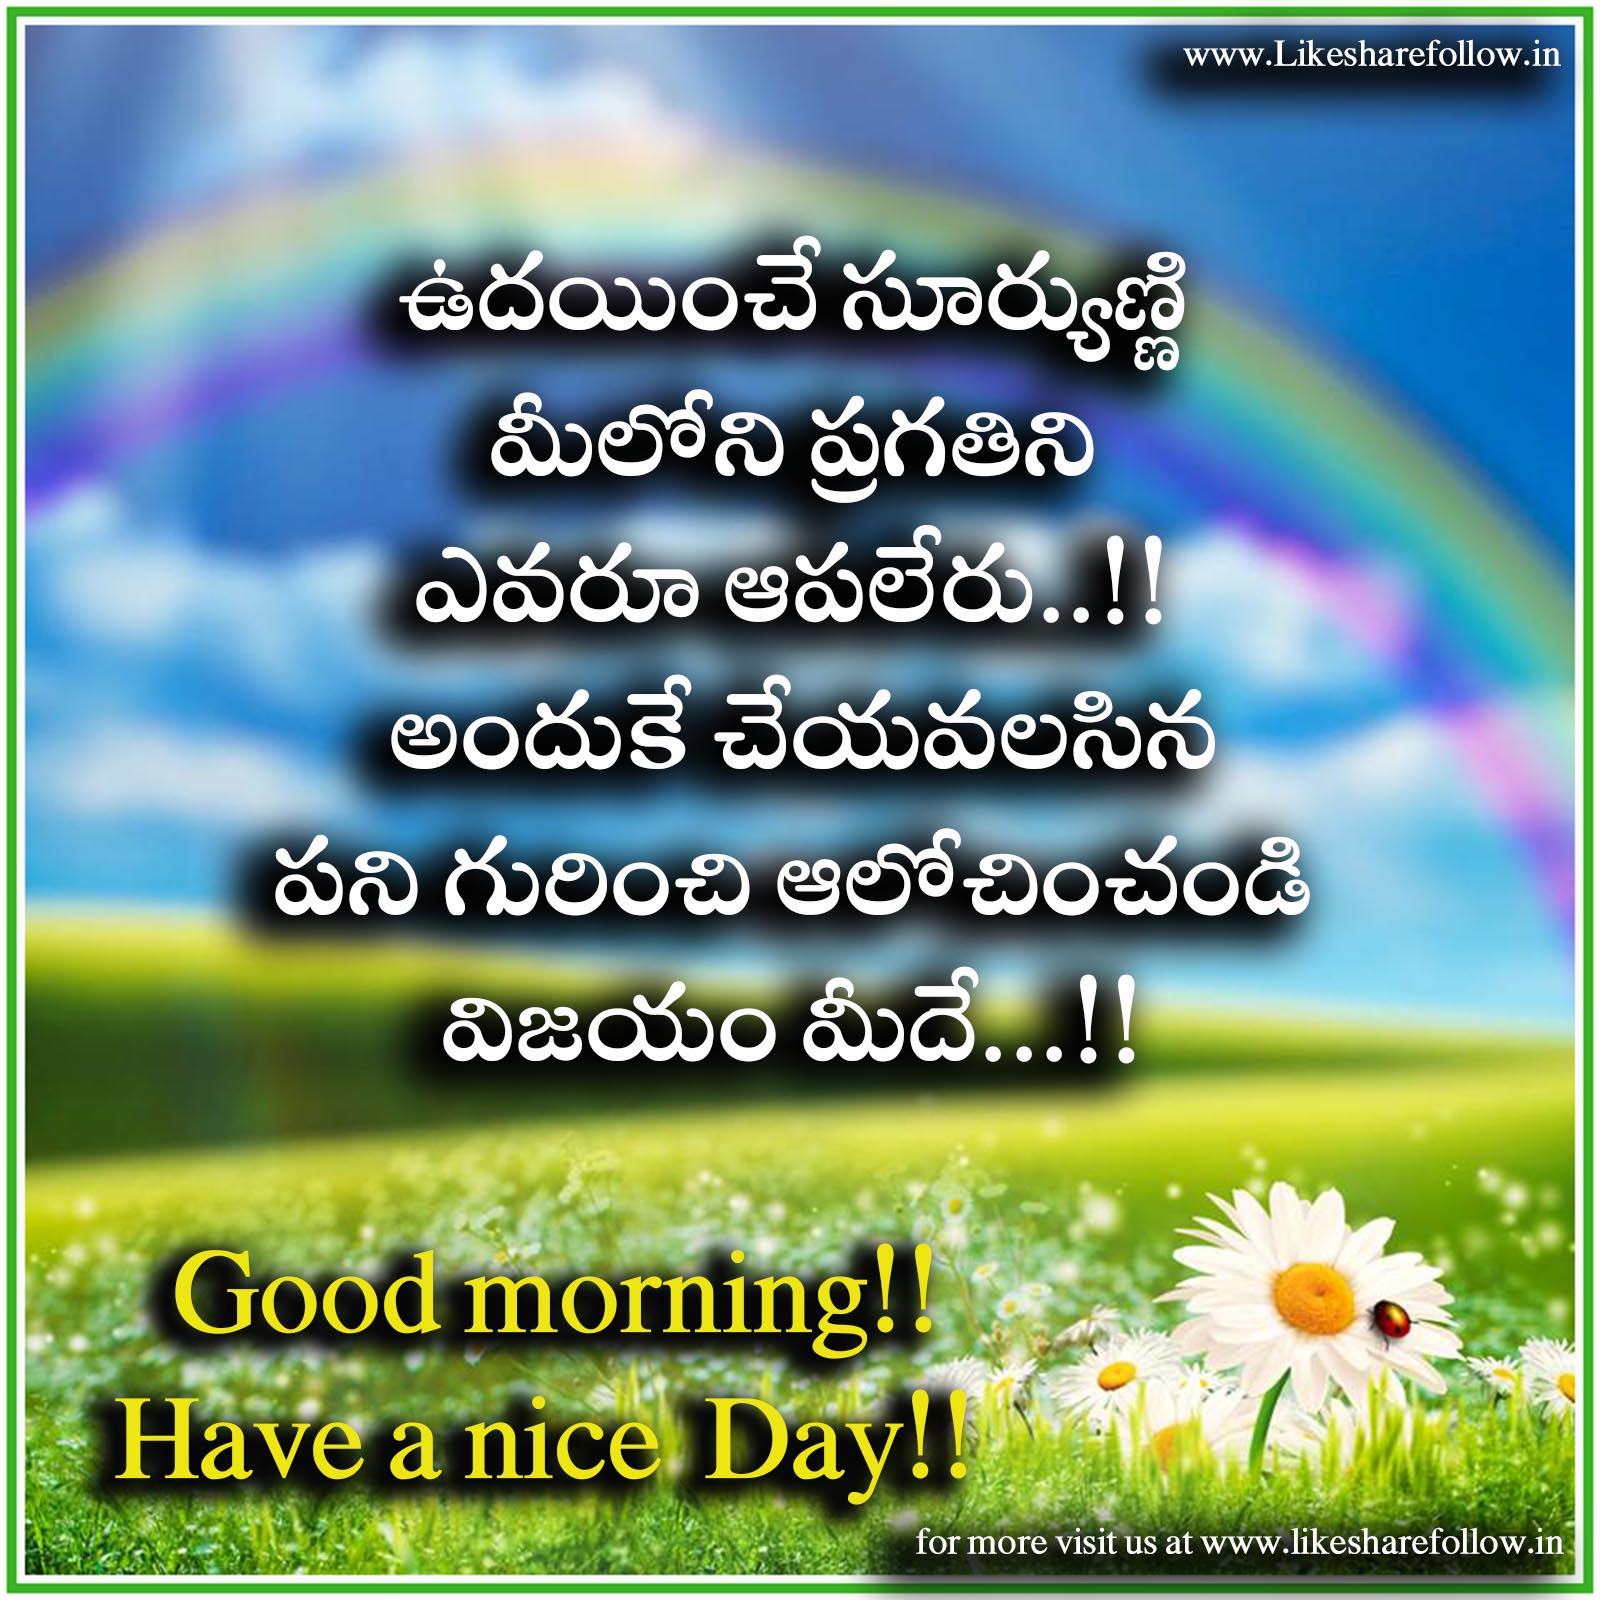 Good morning greetings with beautiful messages